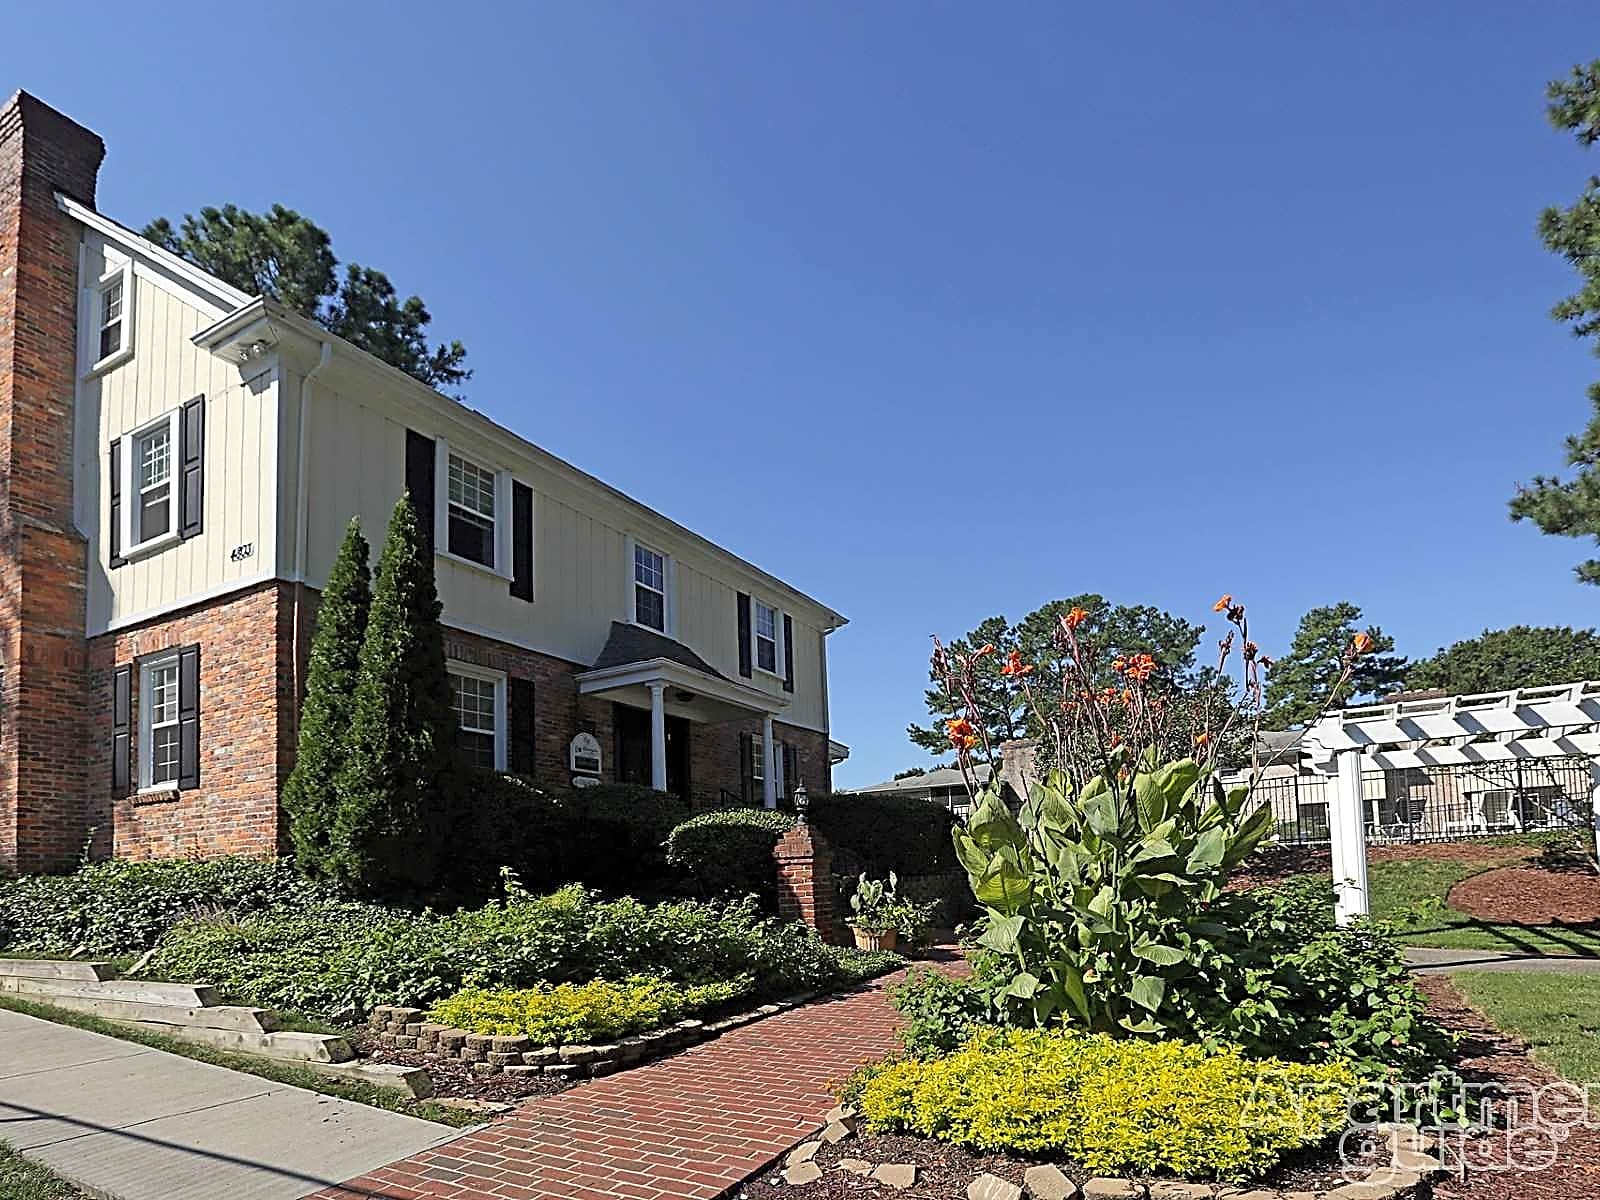 Photo: Raleigh Apartment for Rent - $595.00 / month; 1 Bd & 1 Ba